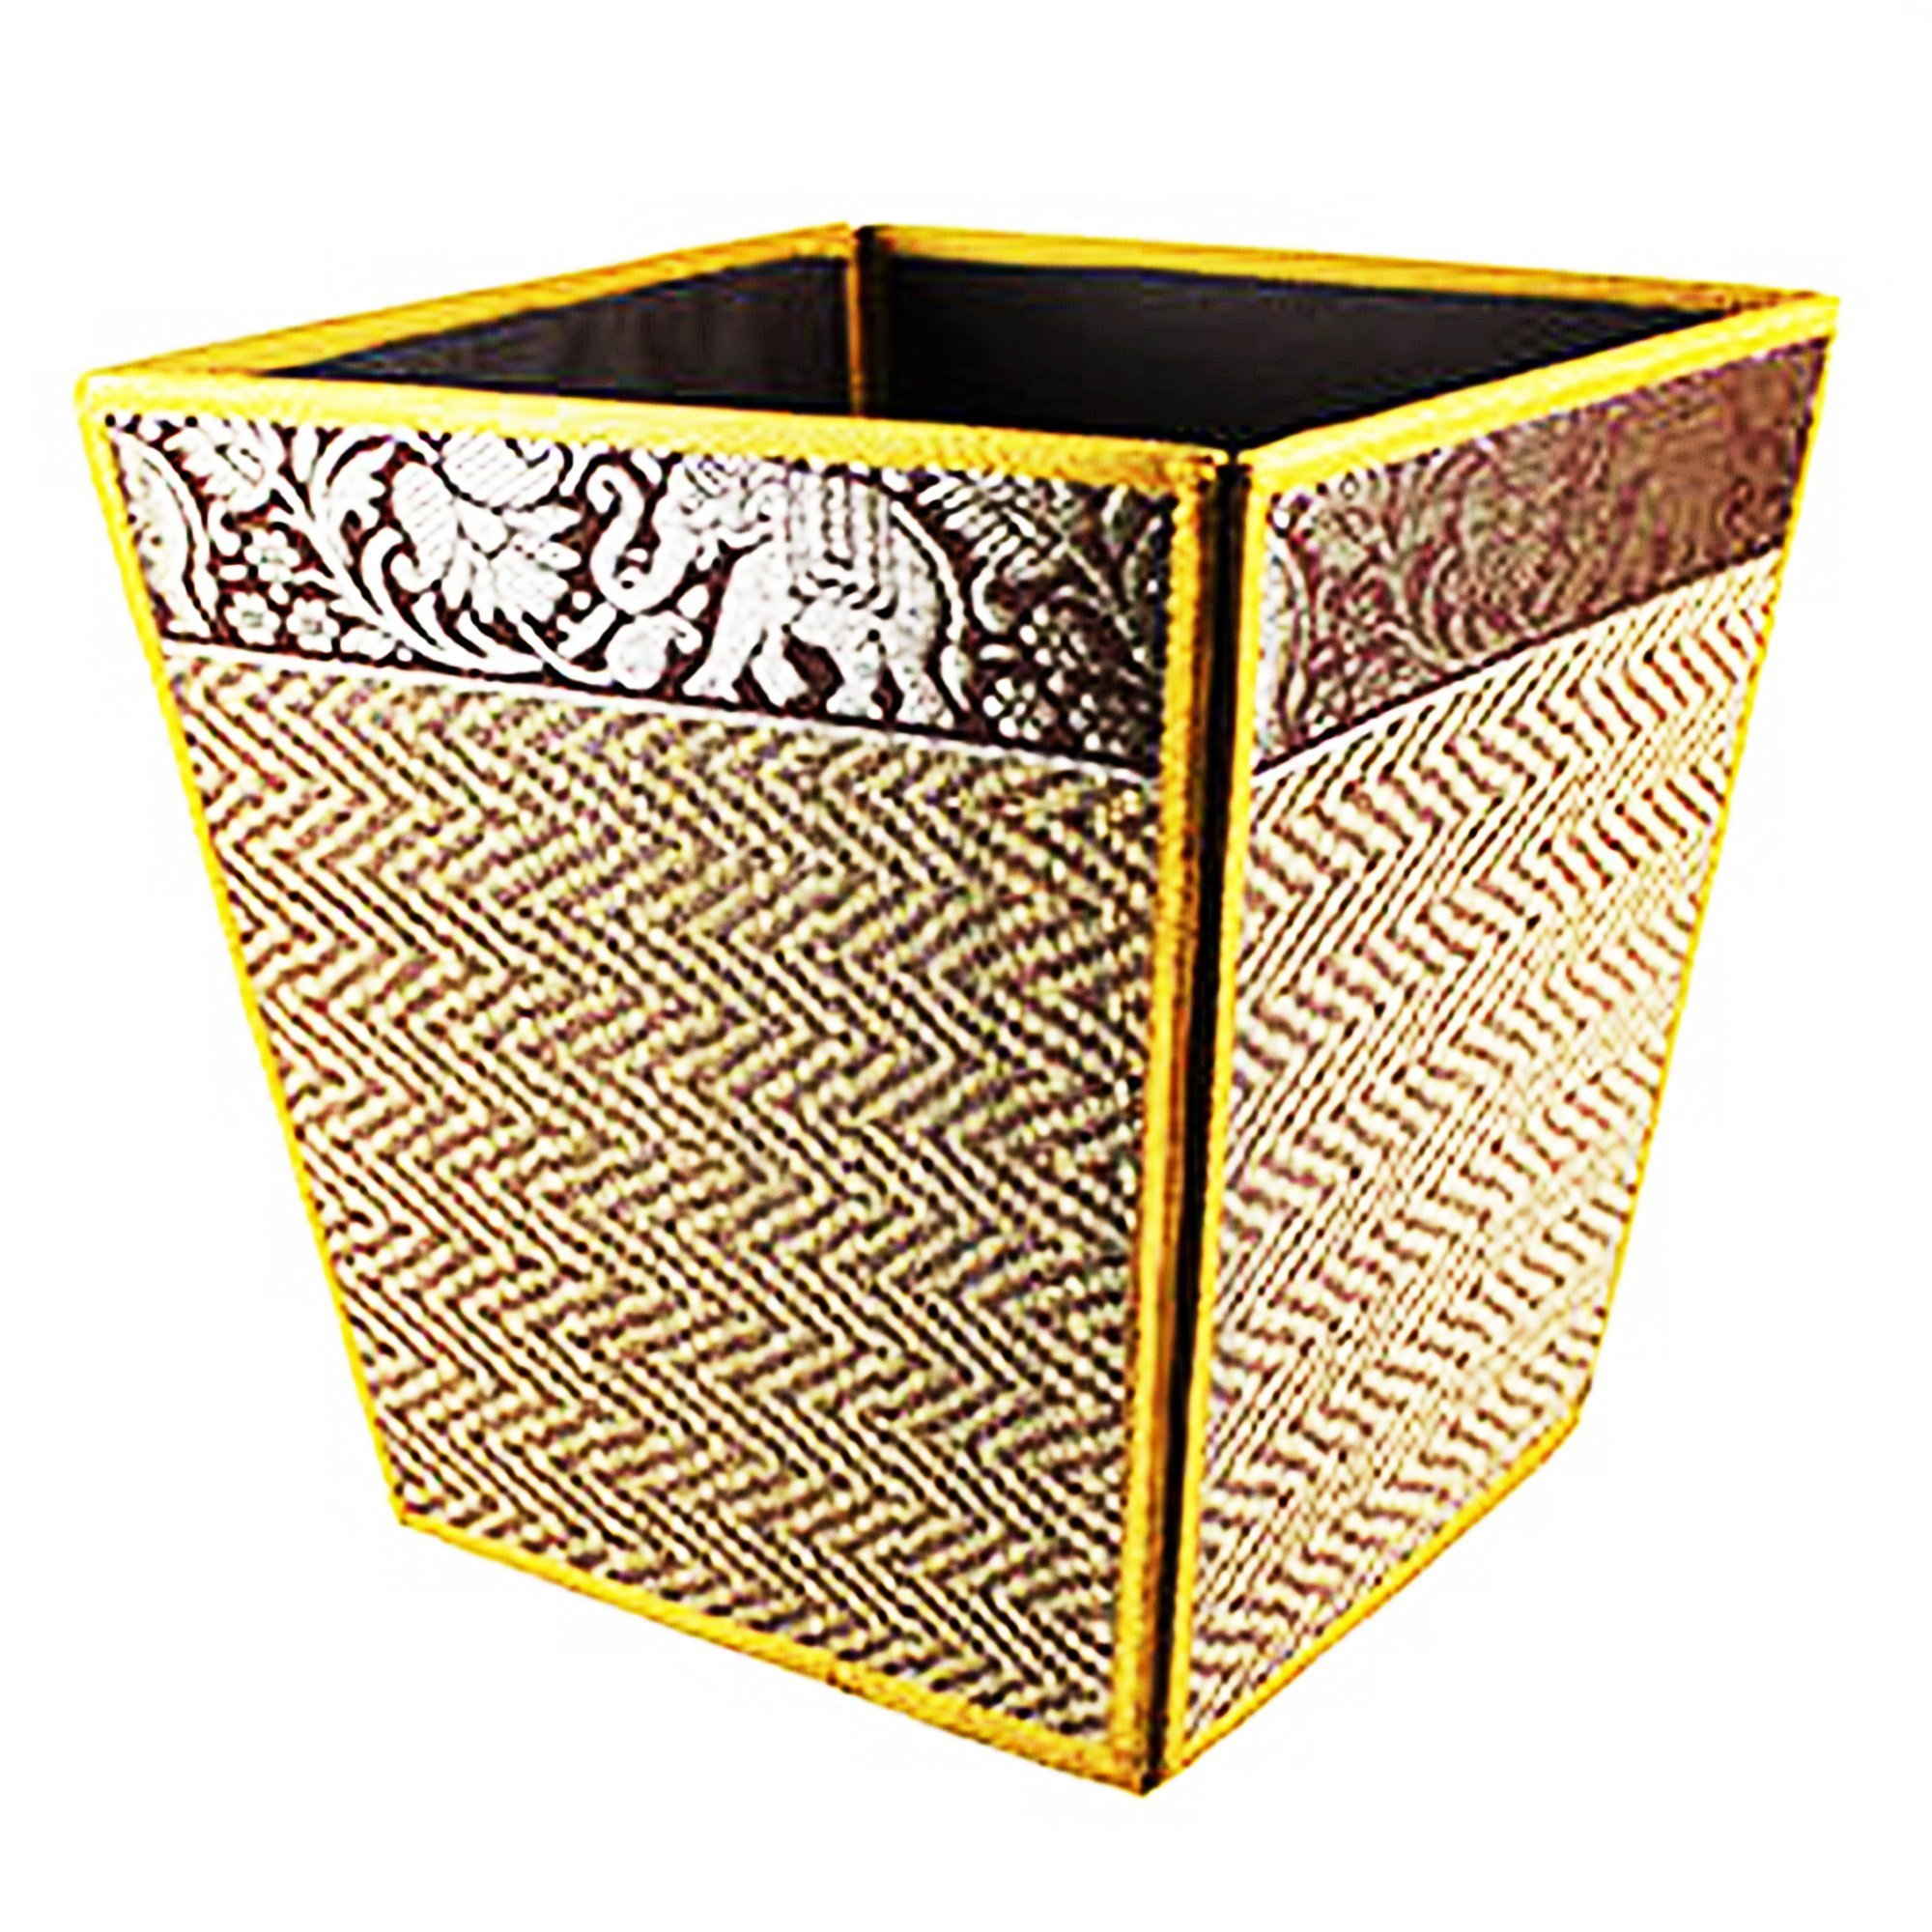 chantubtimplaza Waste Basket Thai Elephant Silk Reed Paper Bin Home Decor Gold Color by chantubtimplaza